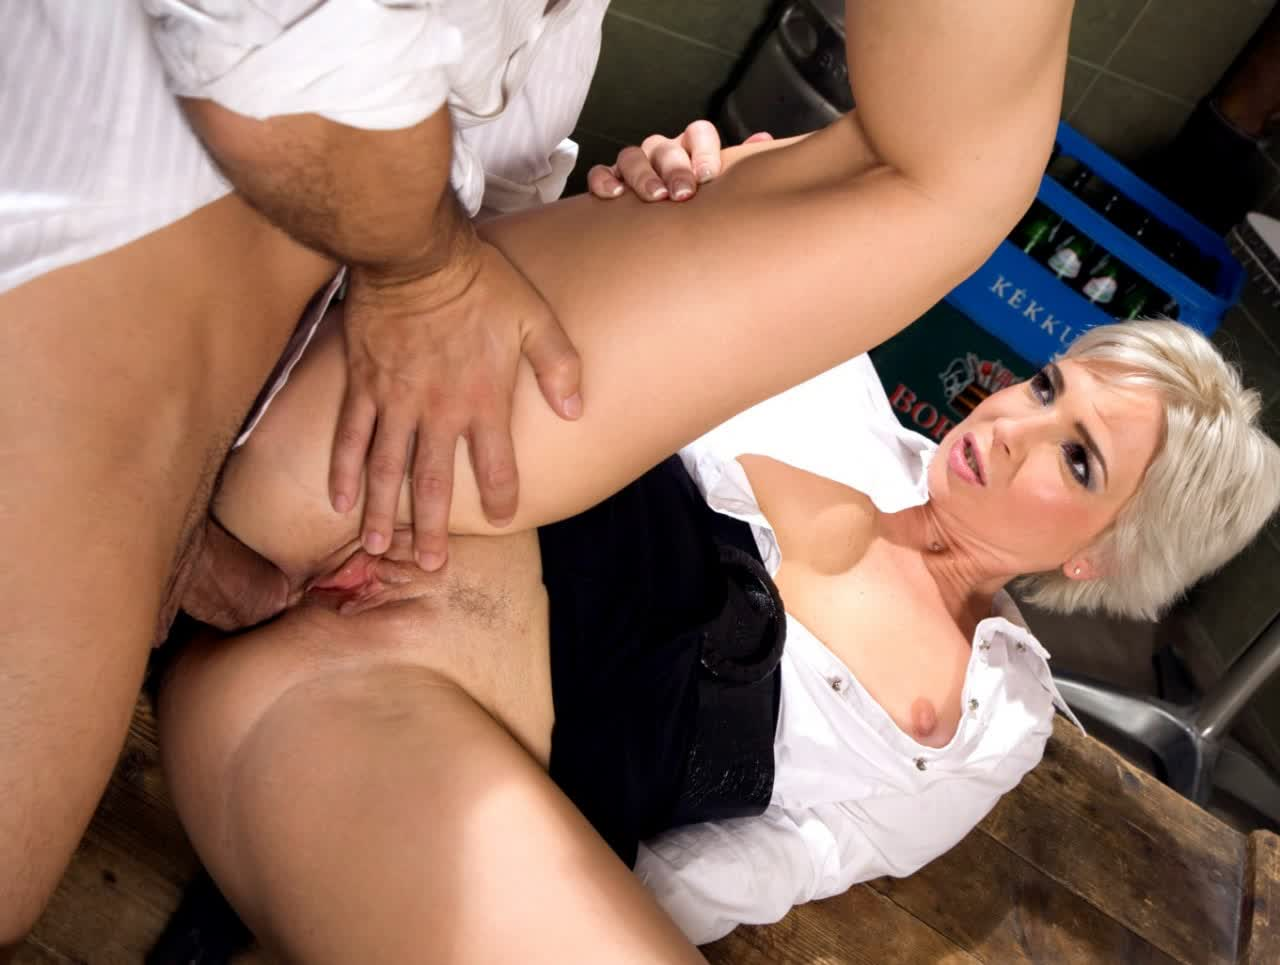 Enormous Boobed Nurse Likes To Ravage Her Patient HD